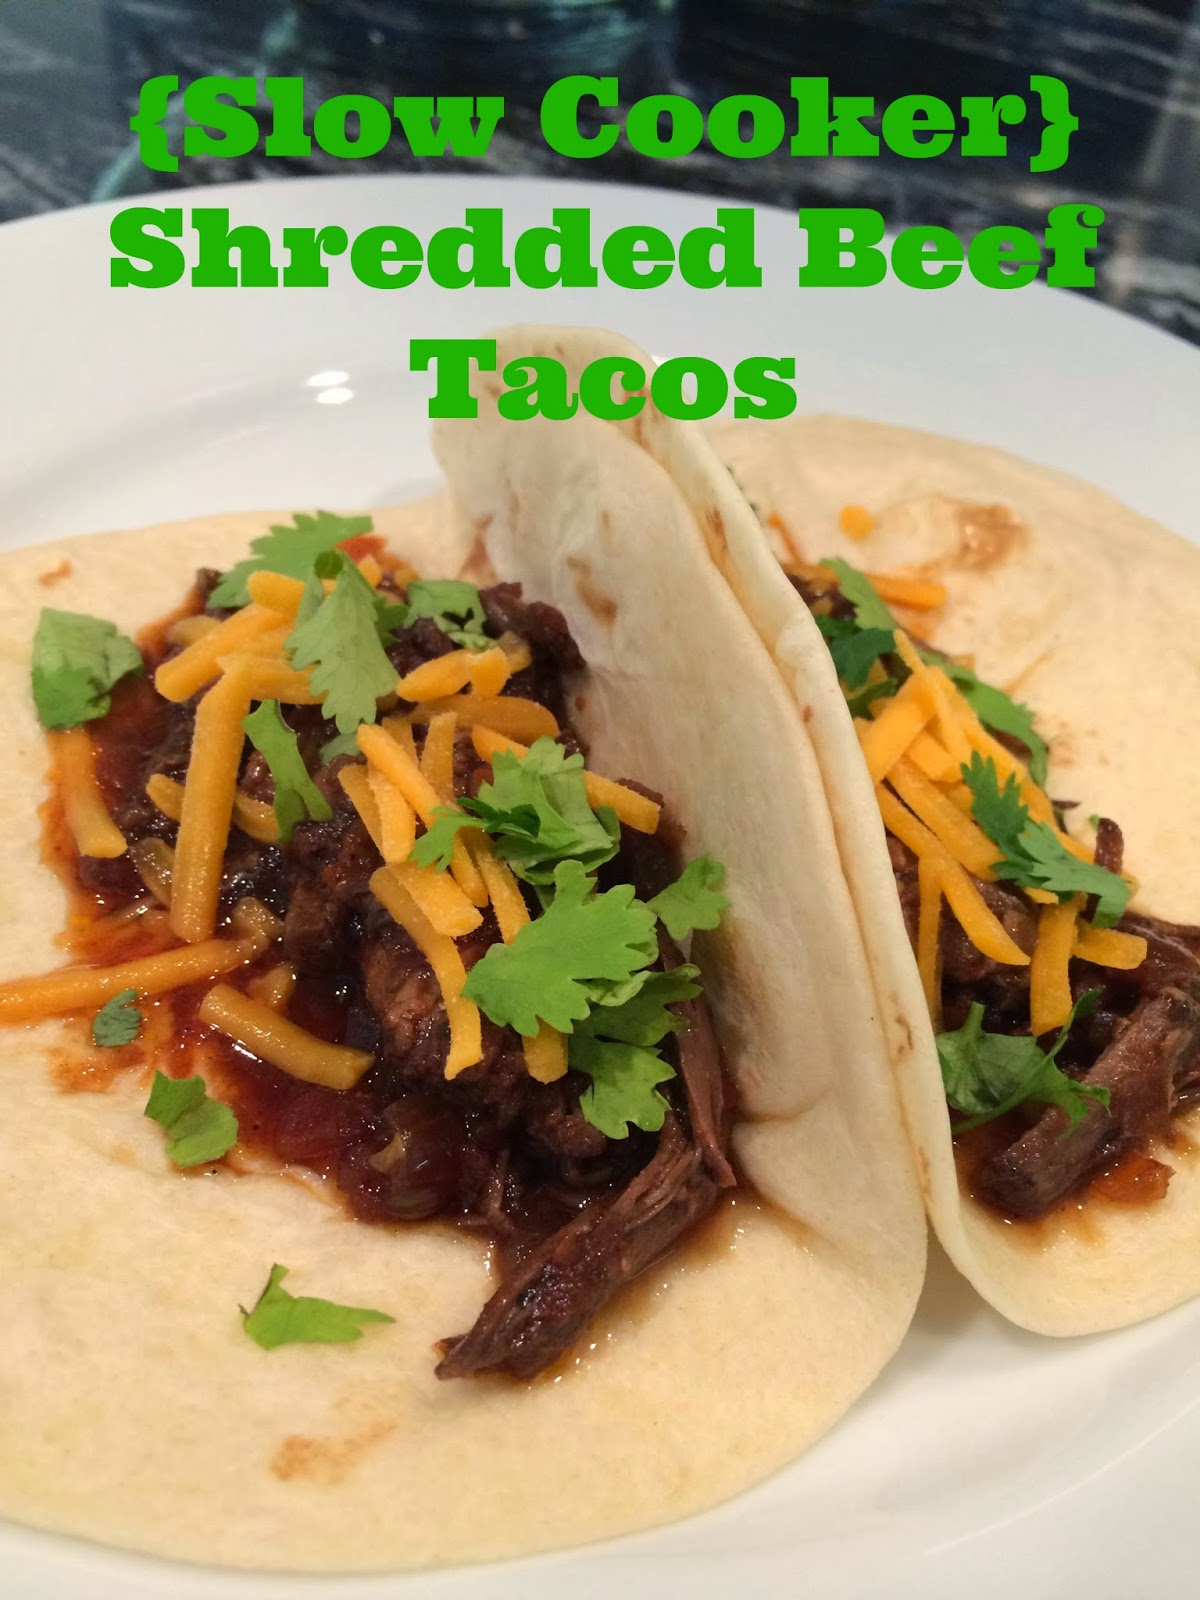 in a Nutshell: {Slow Cooker} Shredded Beef Tacos